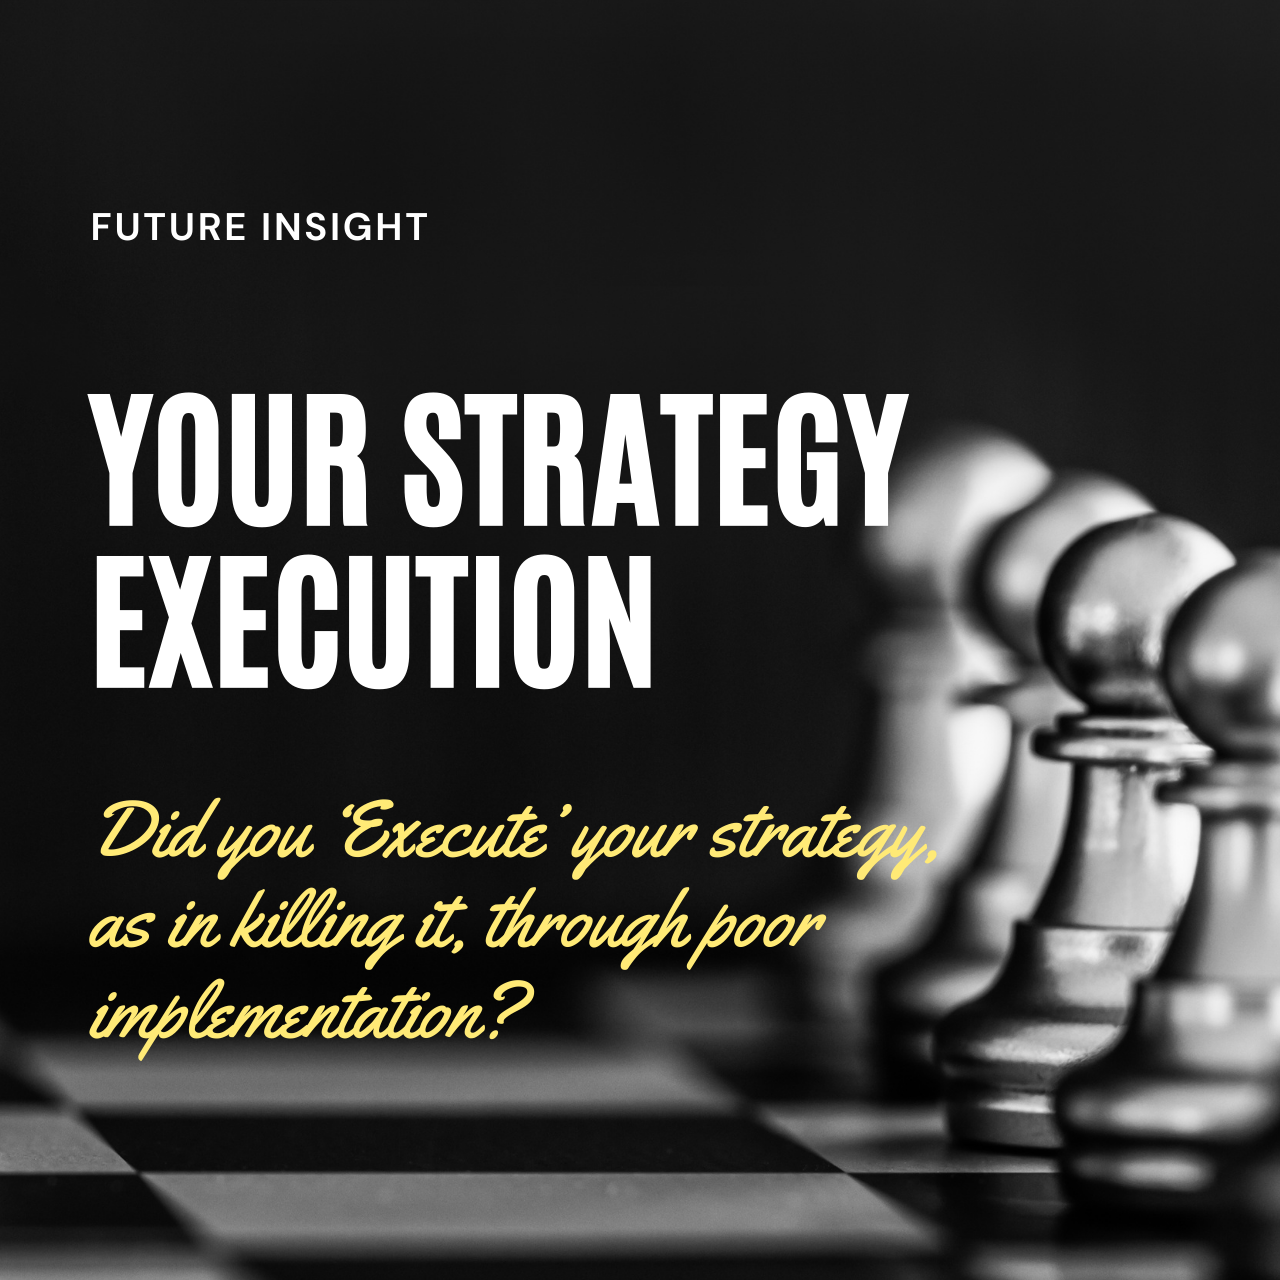 Your Strategy Execution